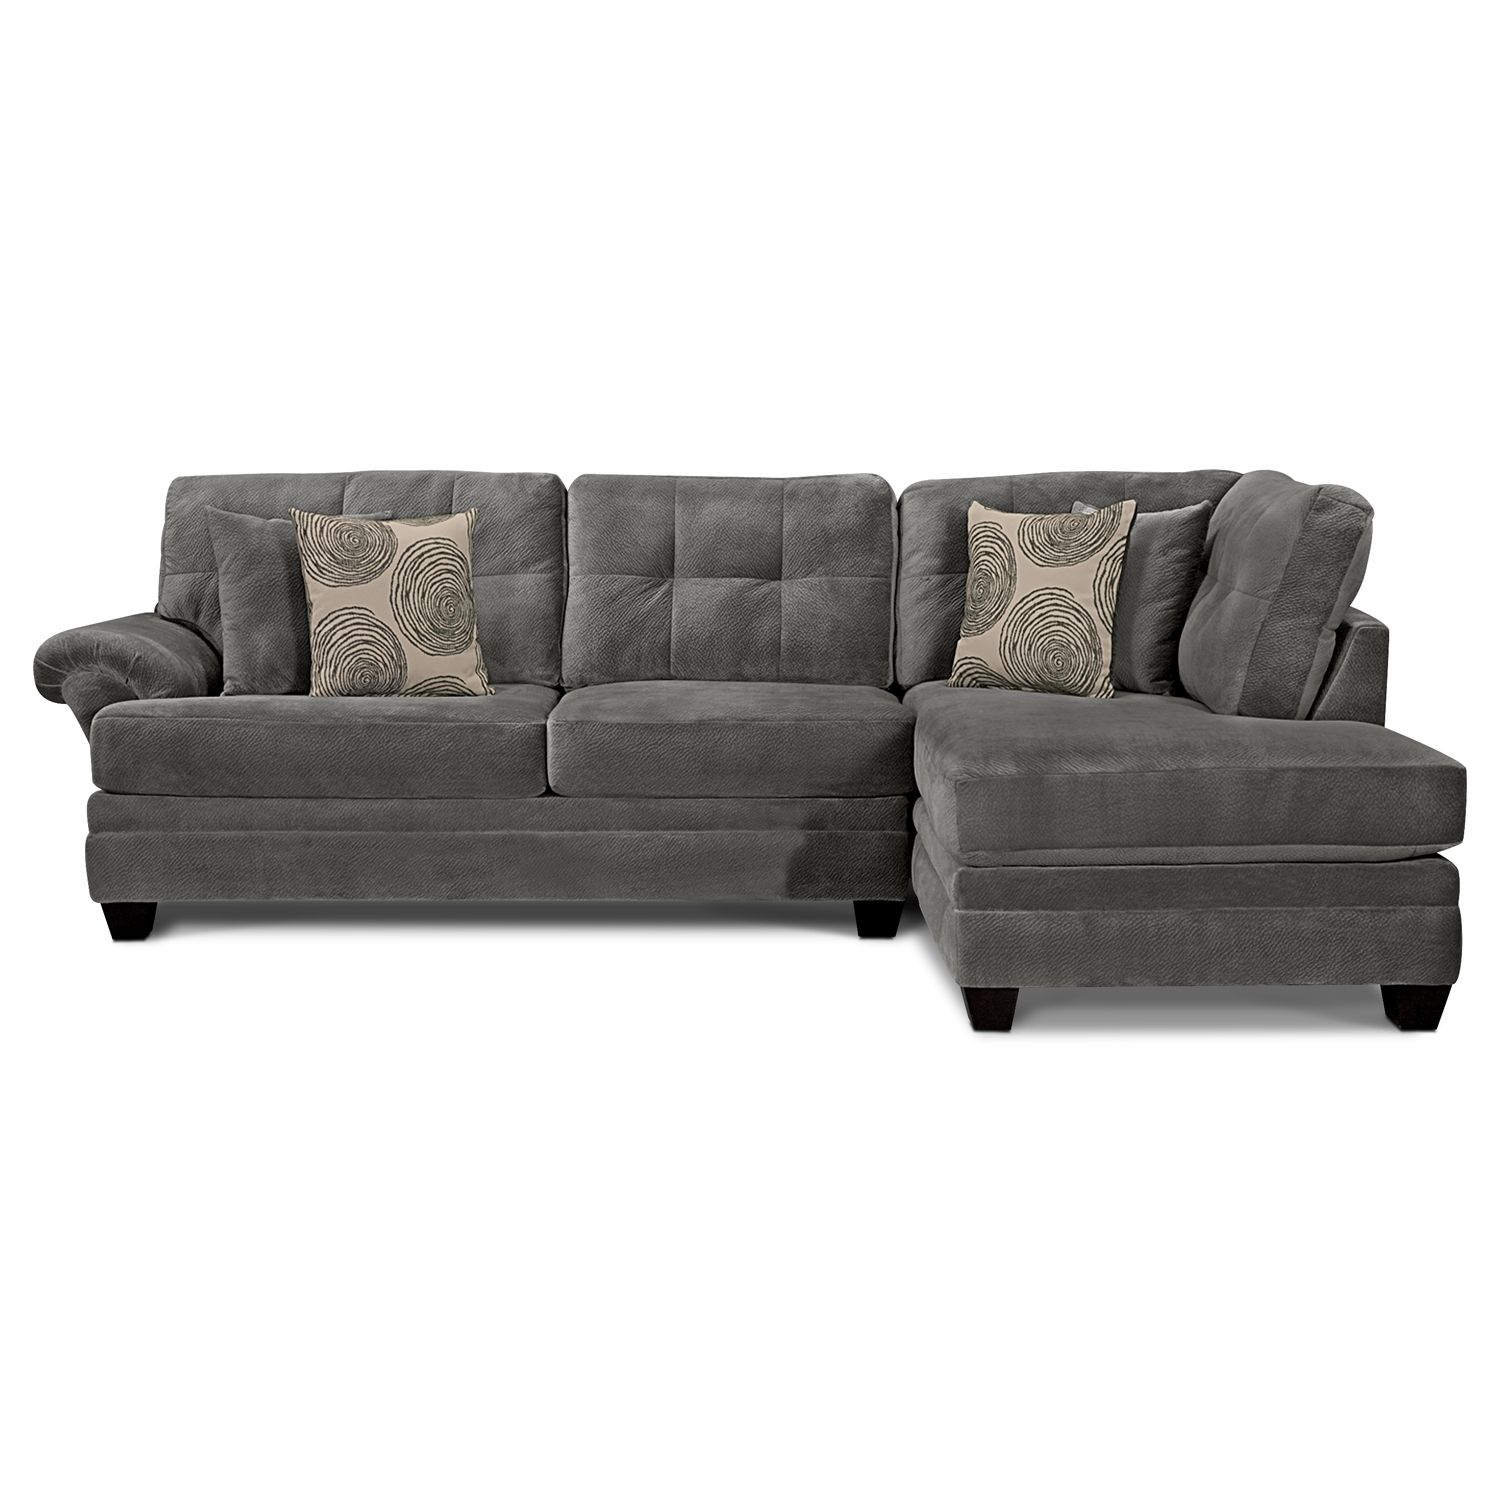 Cordelle 2 Piece Sectional With Chaise Ideas For The